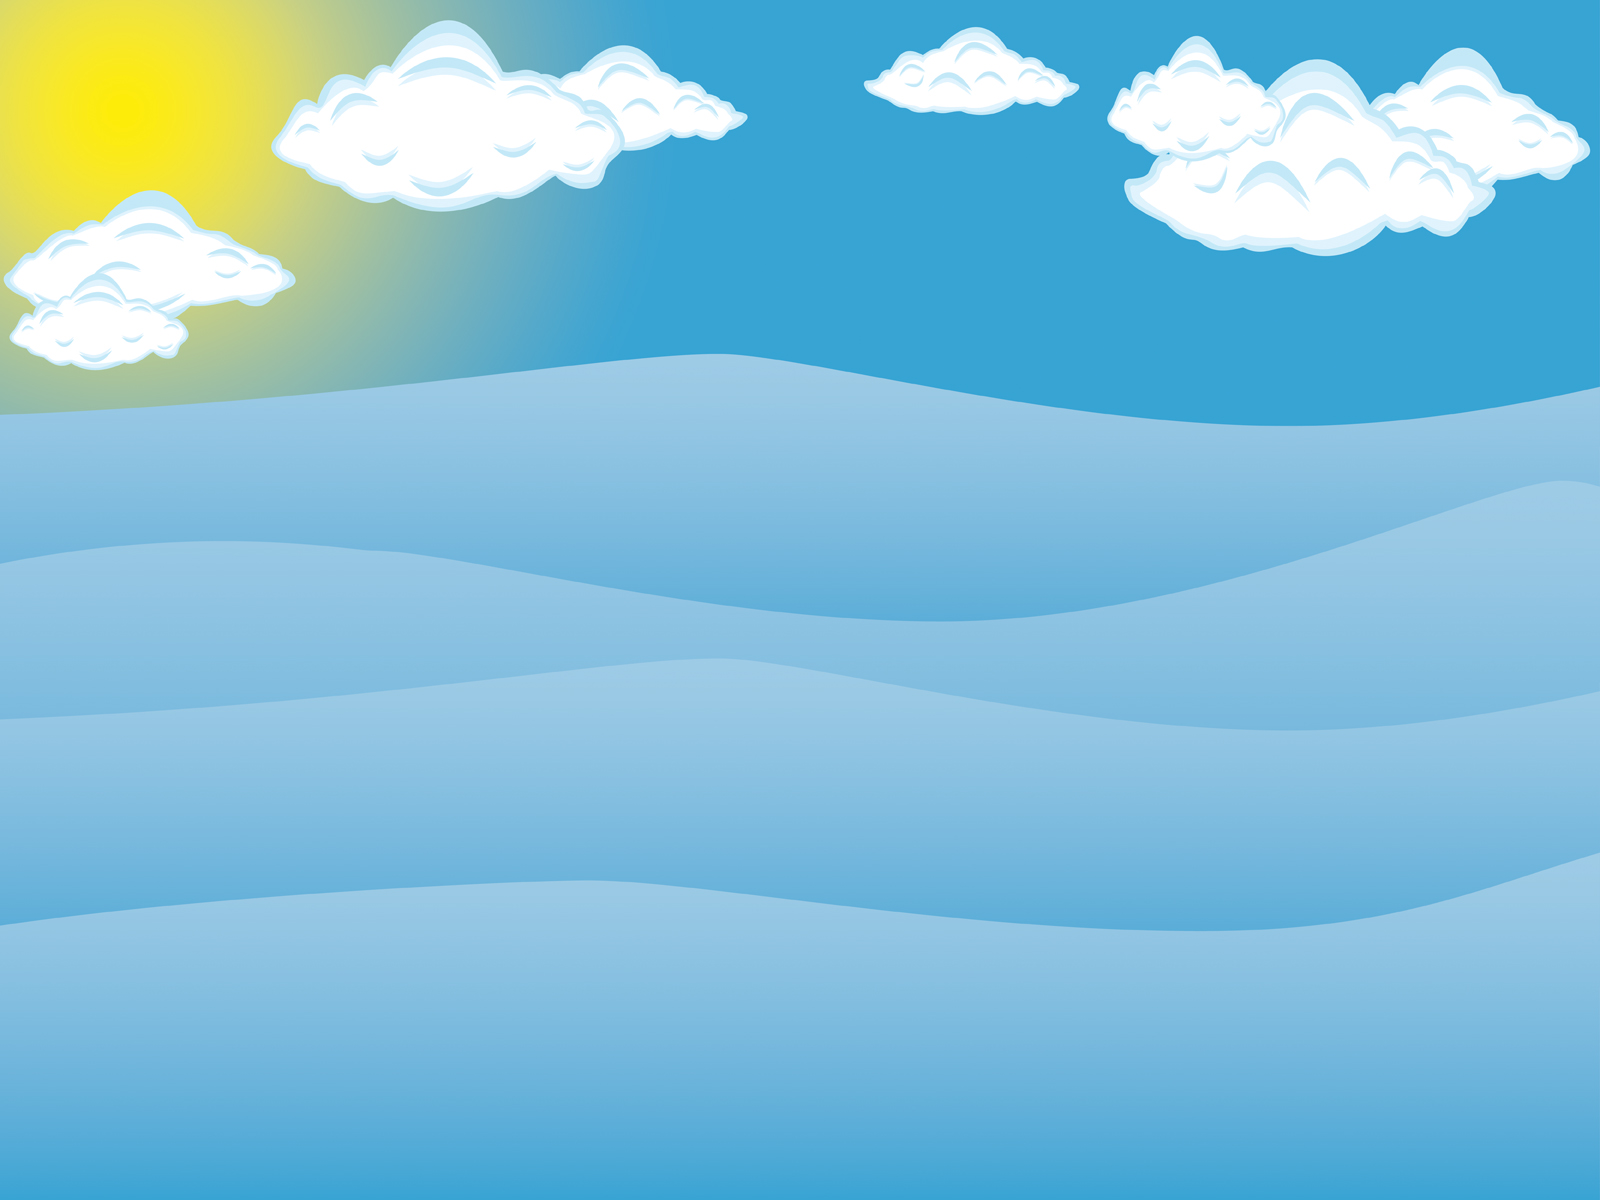 The Sea clipart powerpoint Blue Sea Backgrounds Design Sky